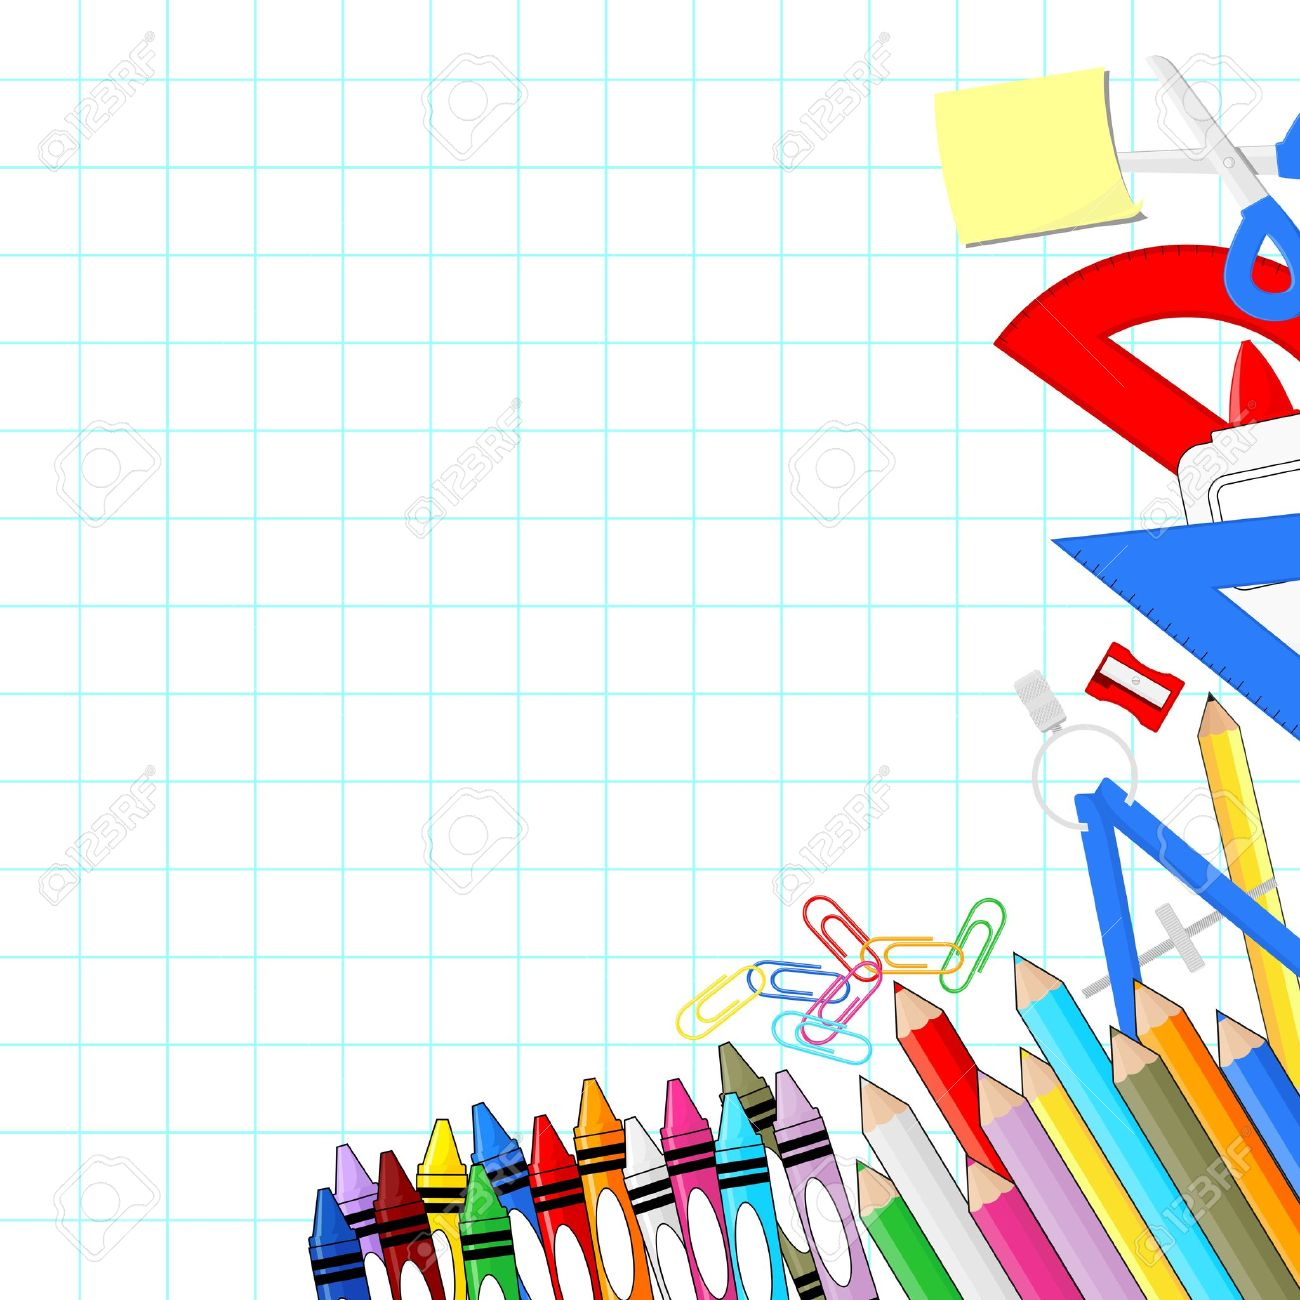 School Supplies On White Grid Paper Background, Individual Objects.